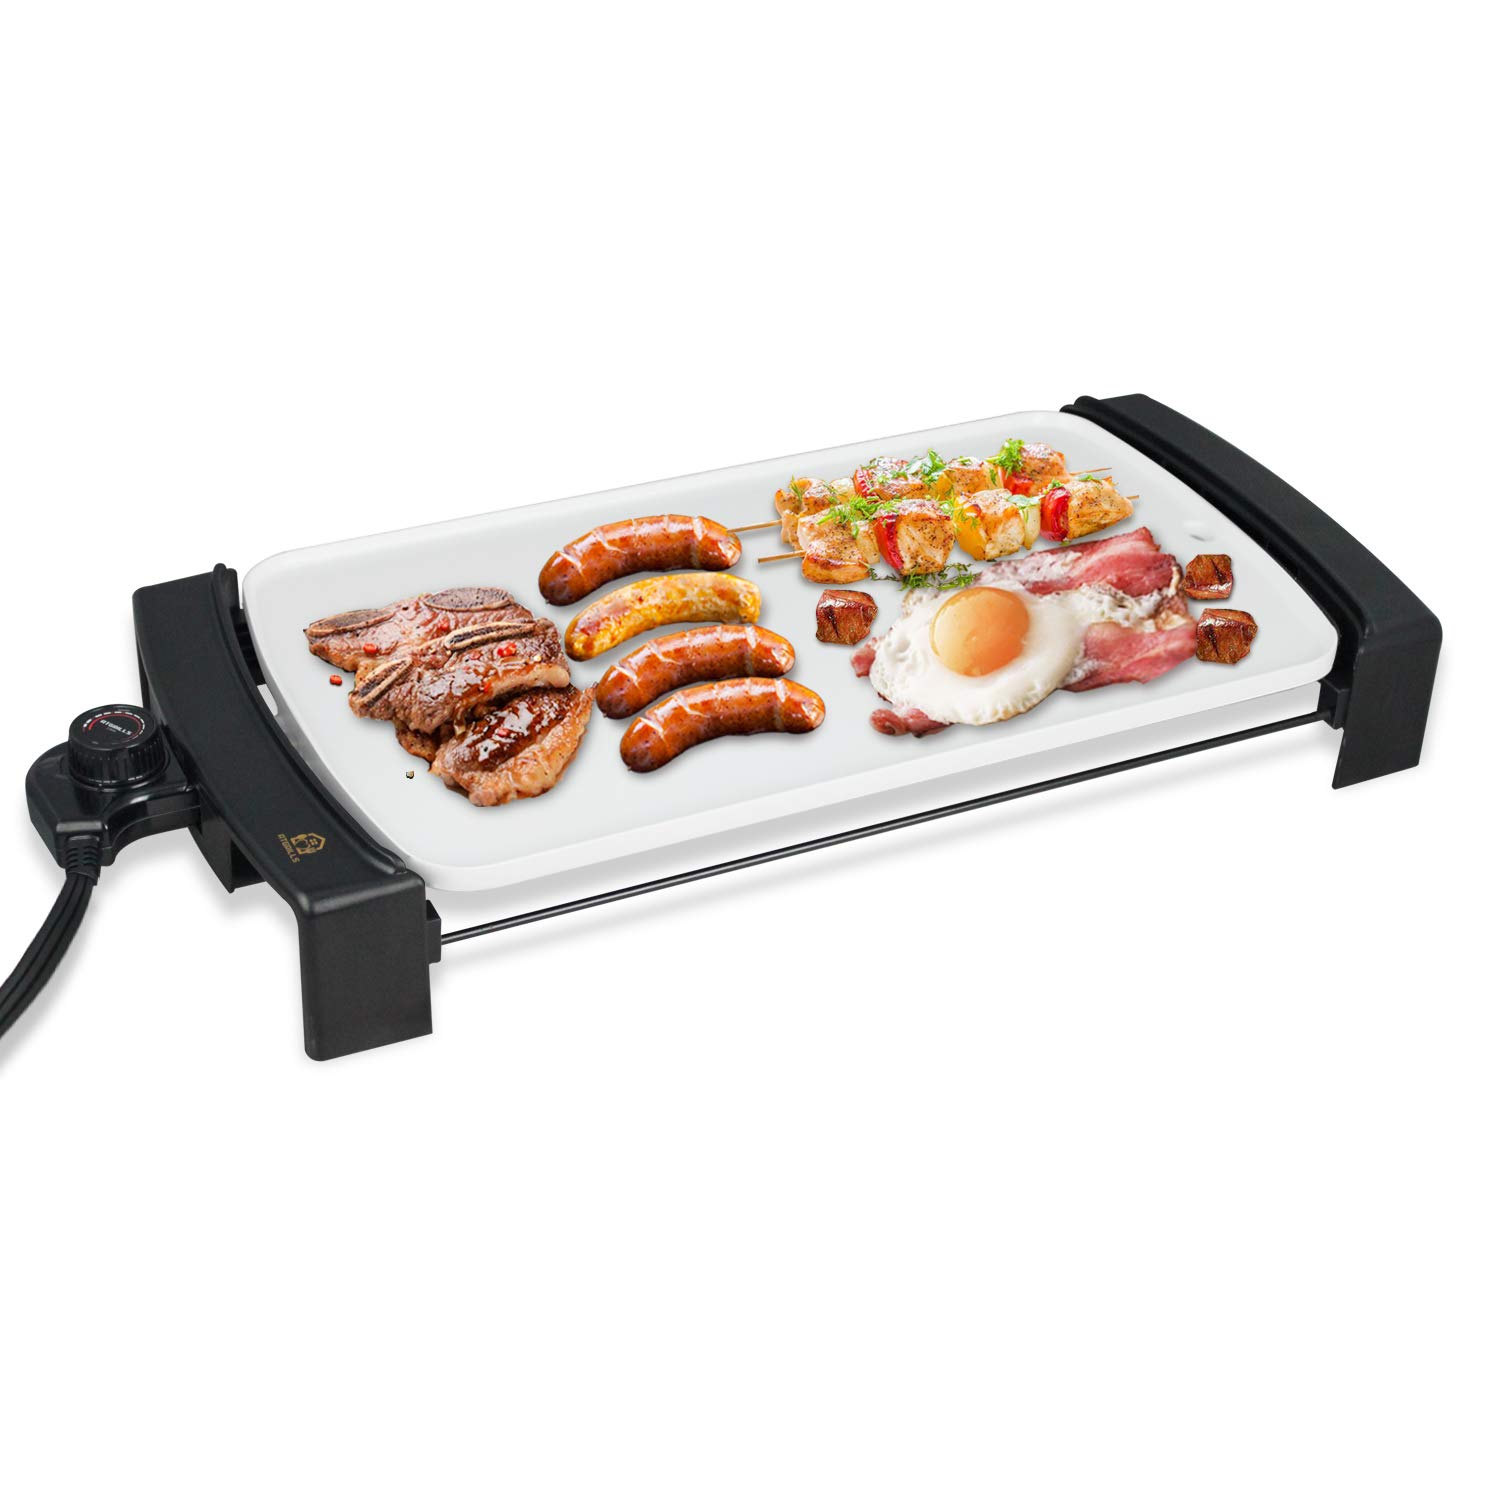 Electric Griddle Non-Stick, Smokeless Kitchen Electric Griddle with Drip Tray & Temperature Control for Indoor/Outdoor, 10''x21'' Family-Sized (HP4525, Ceramic Coating)